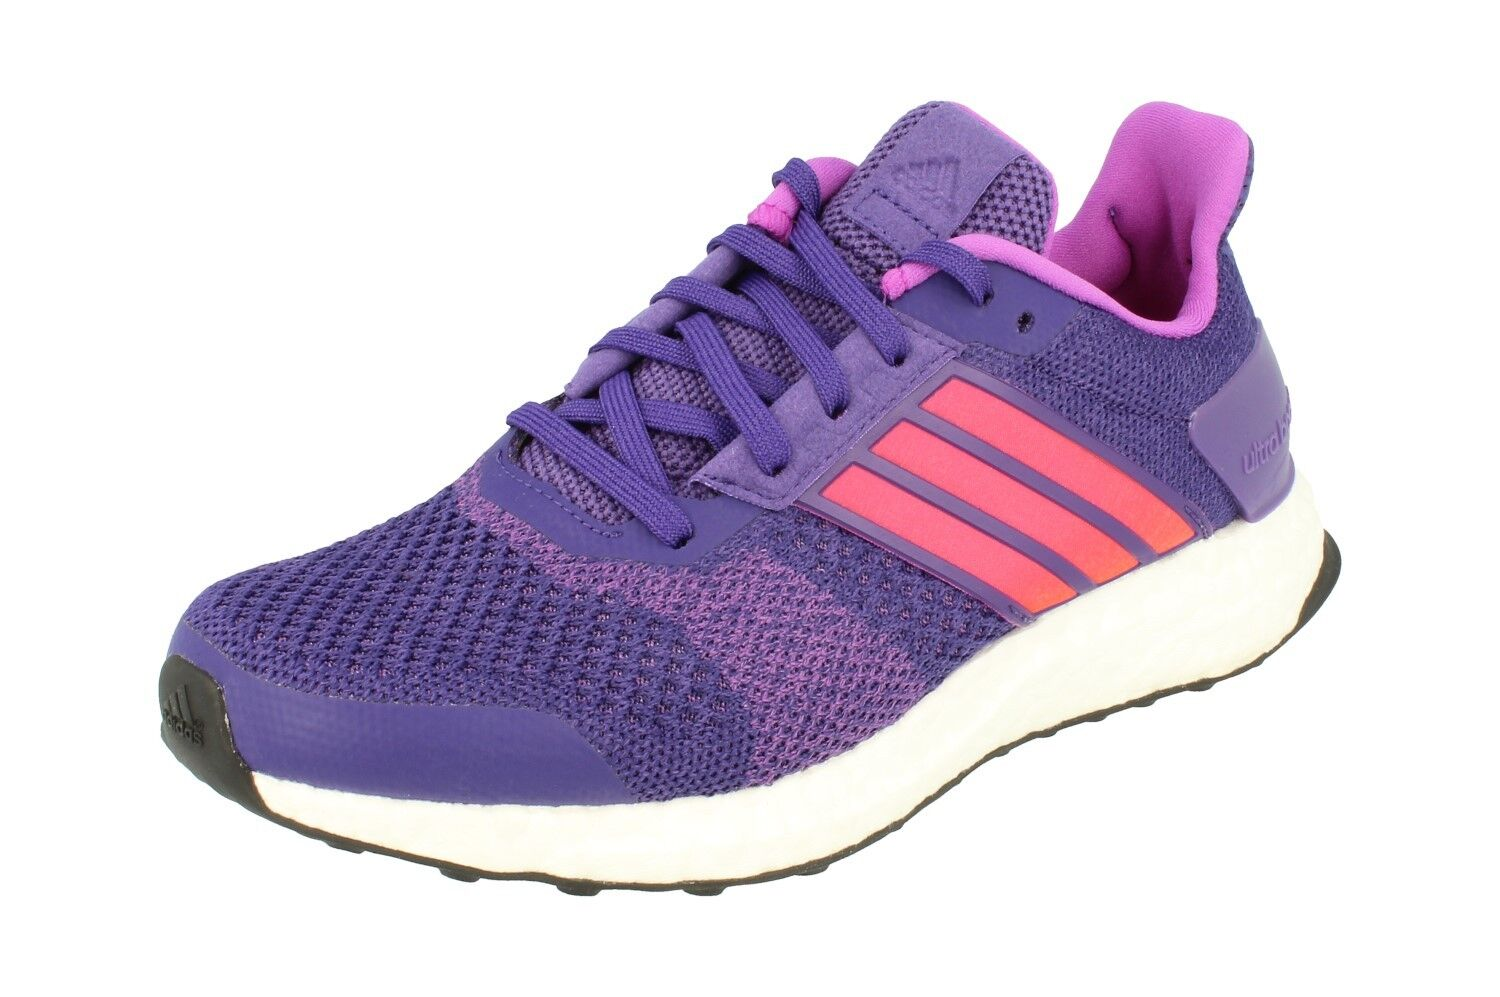 Adidas Ultra Boost St Womens Running Trainers Sneakers AQ4430